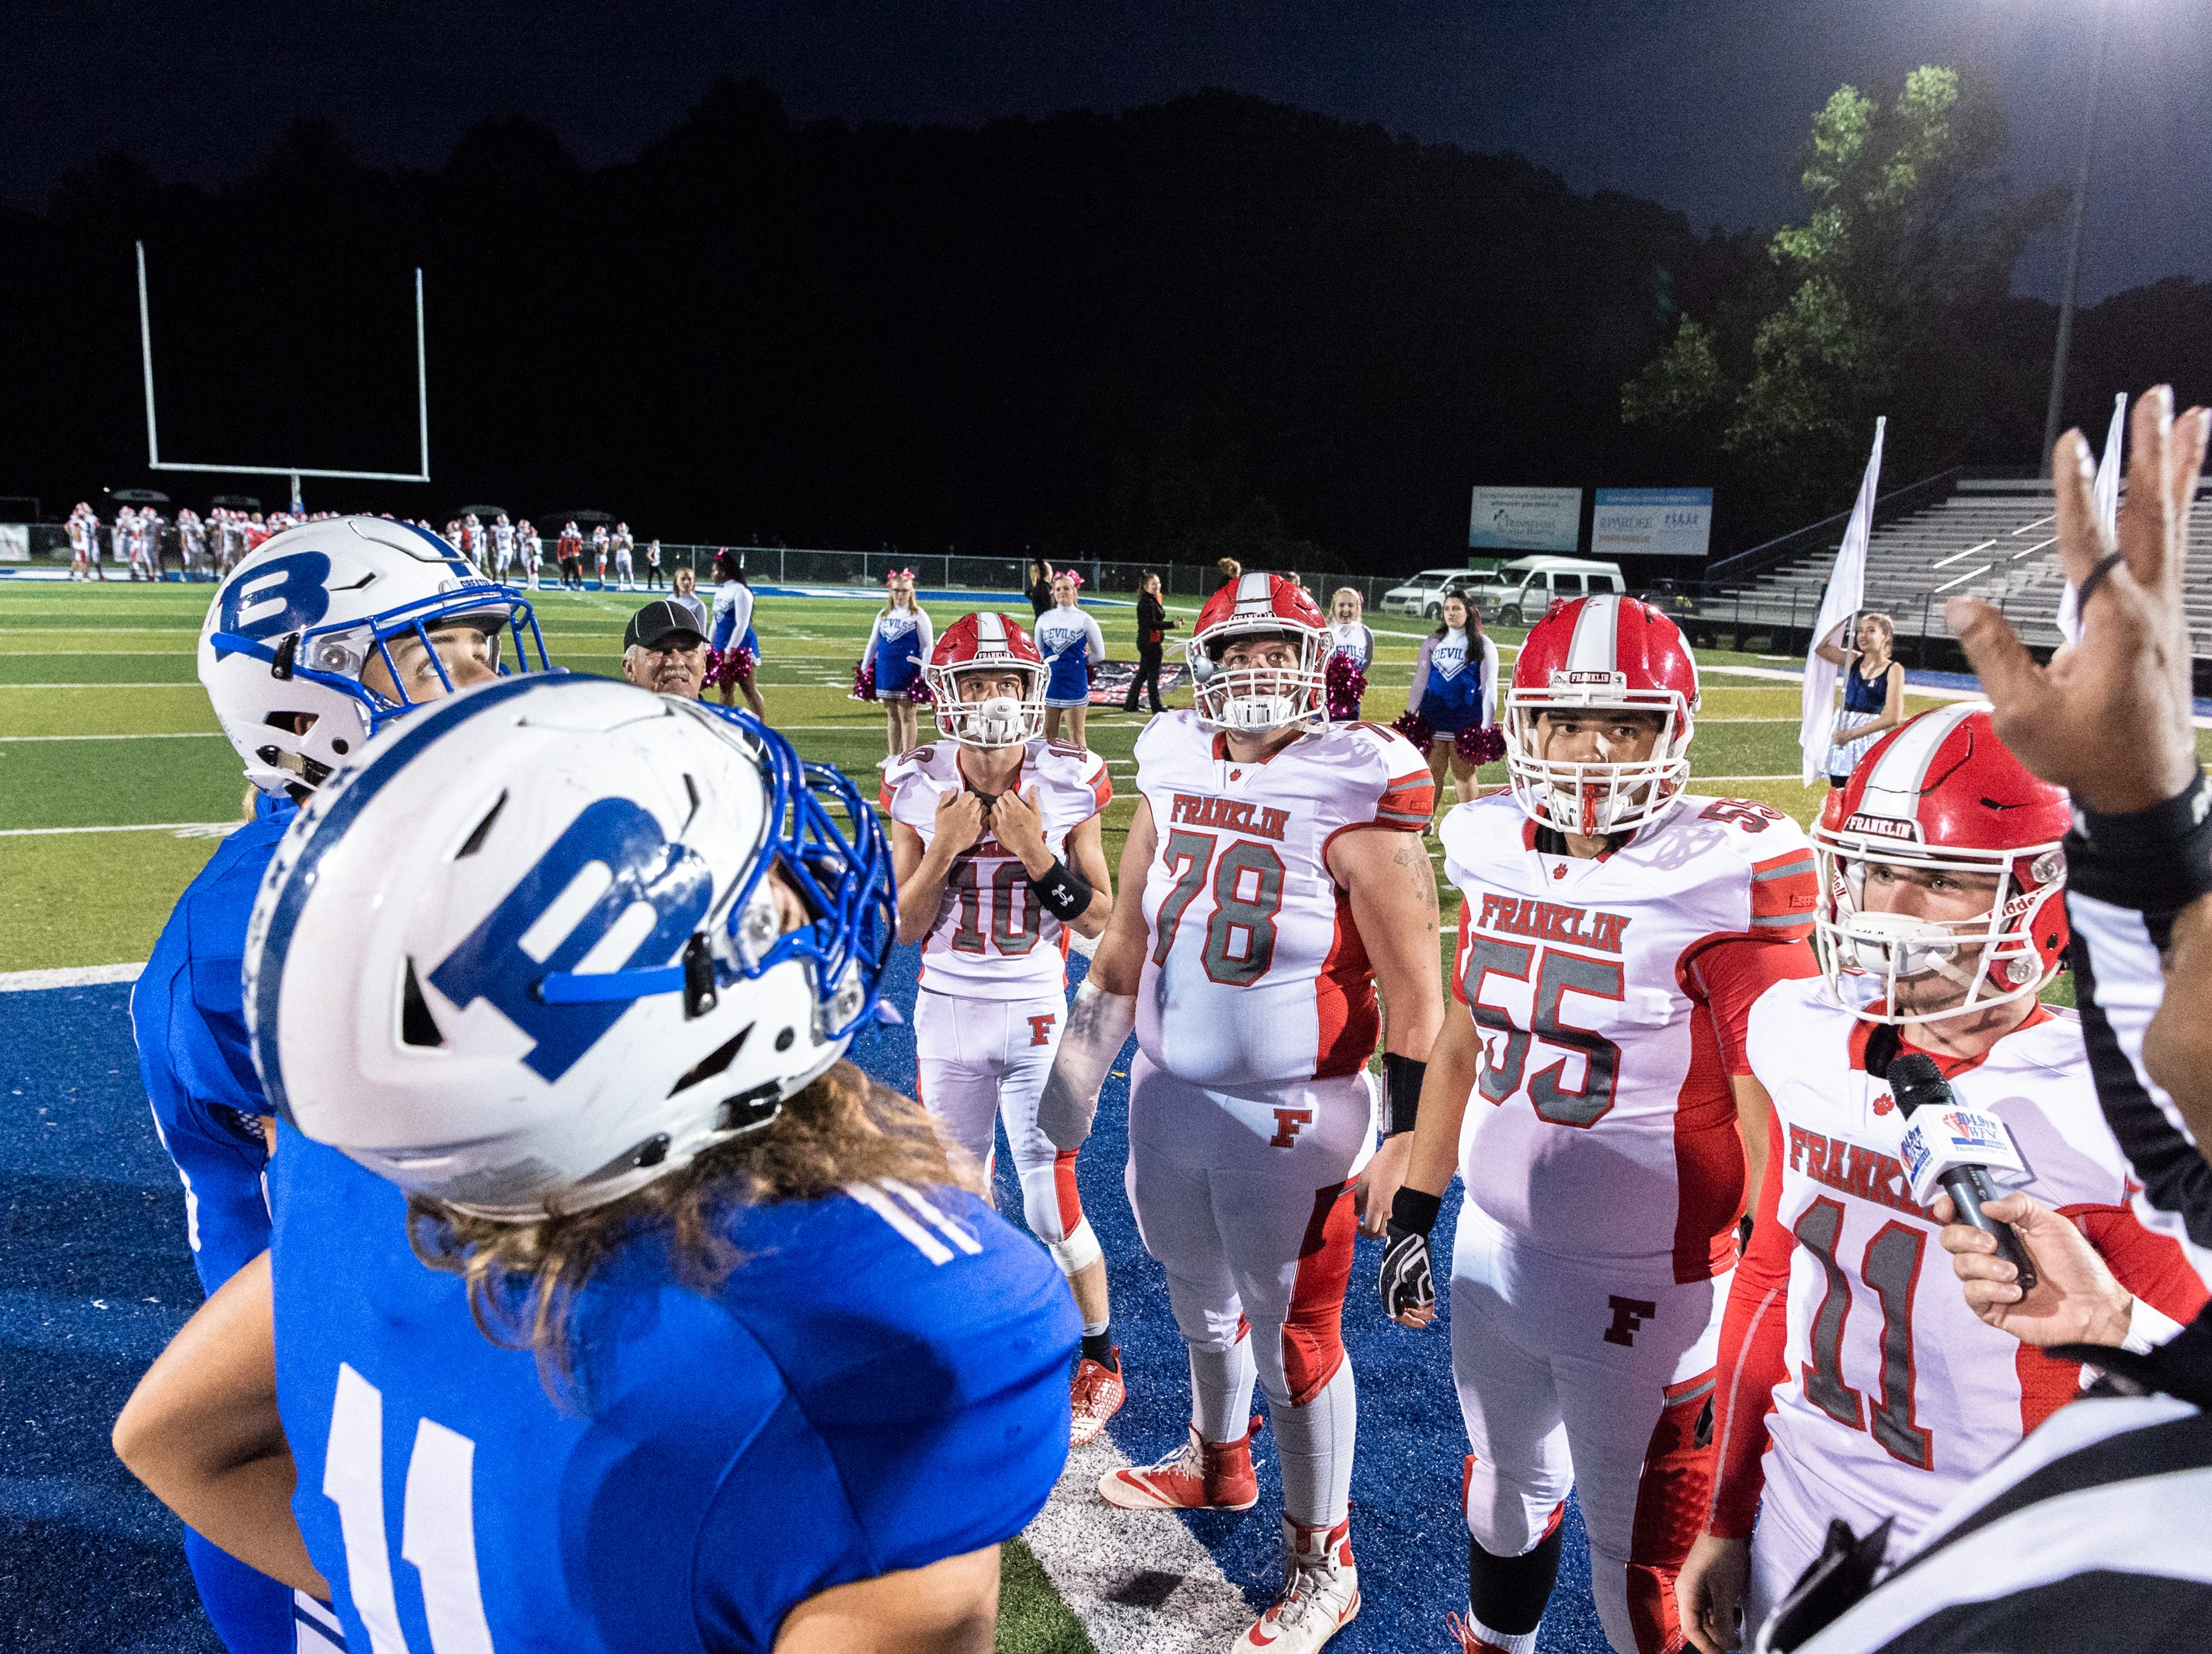 Brevard high school hosted Franklin for their Friday night football game, Oct. 12, 2018.